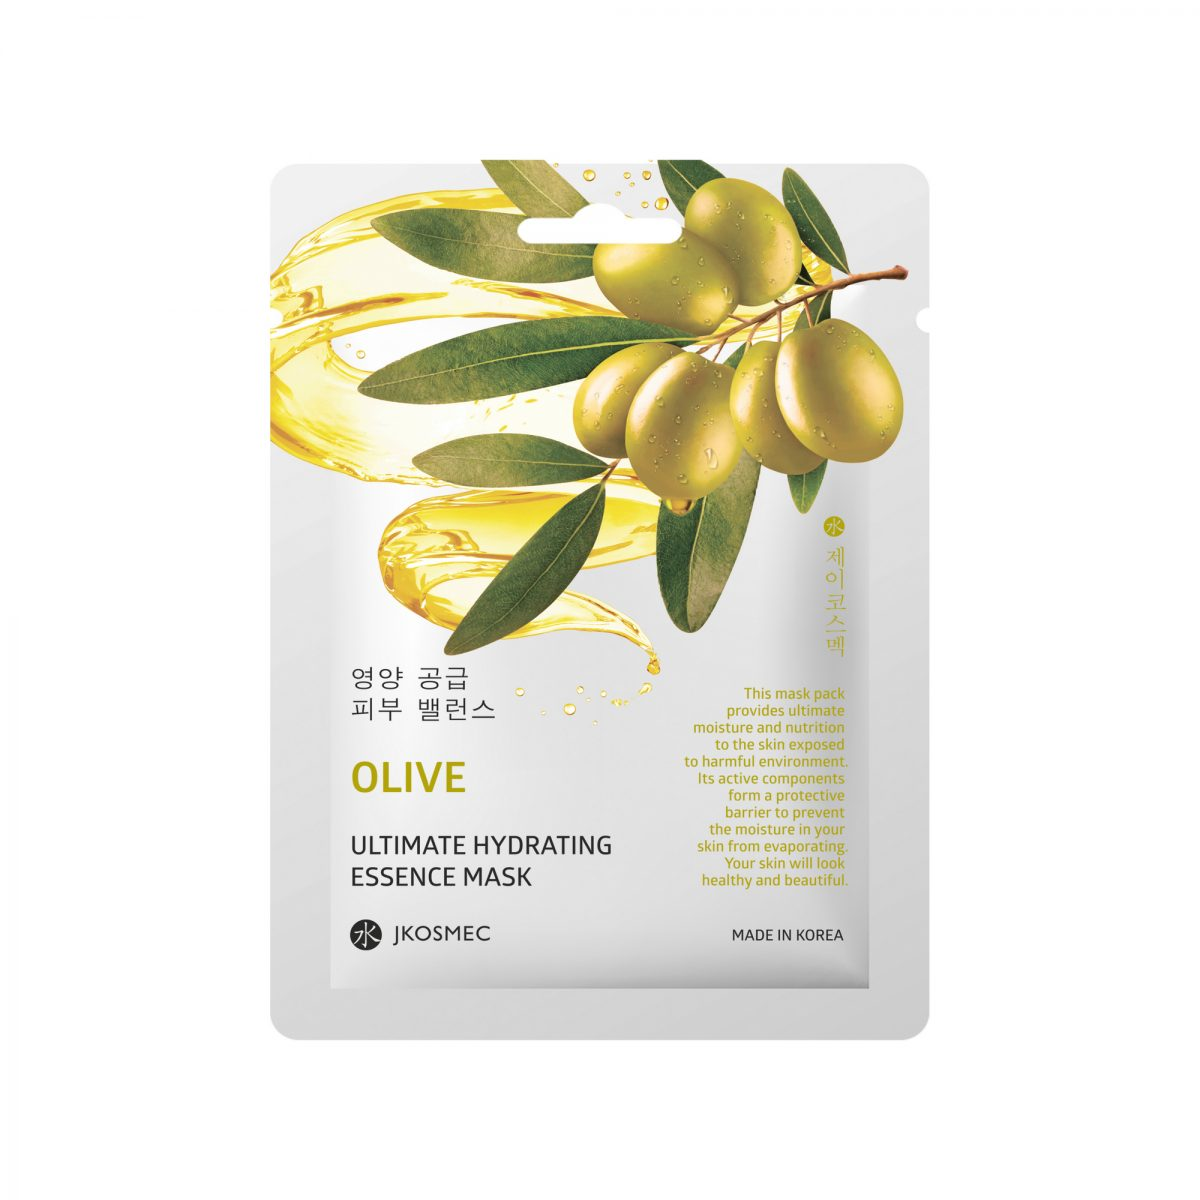 JKOSMEC OLIVE ULTIMATE HYDRATING ESSENCE MASK